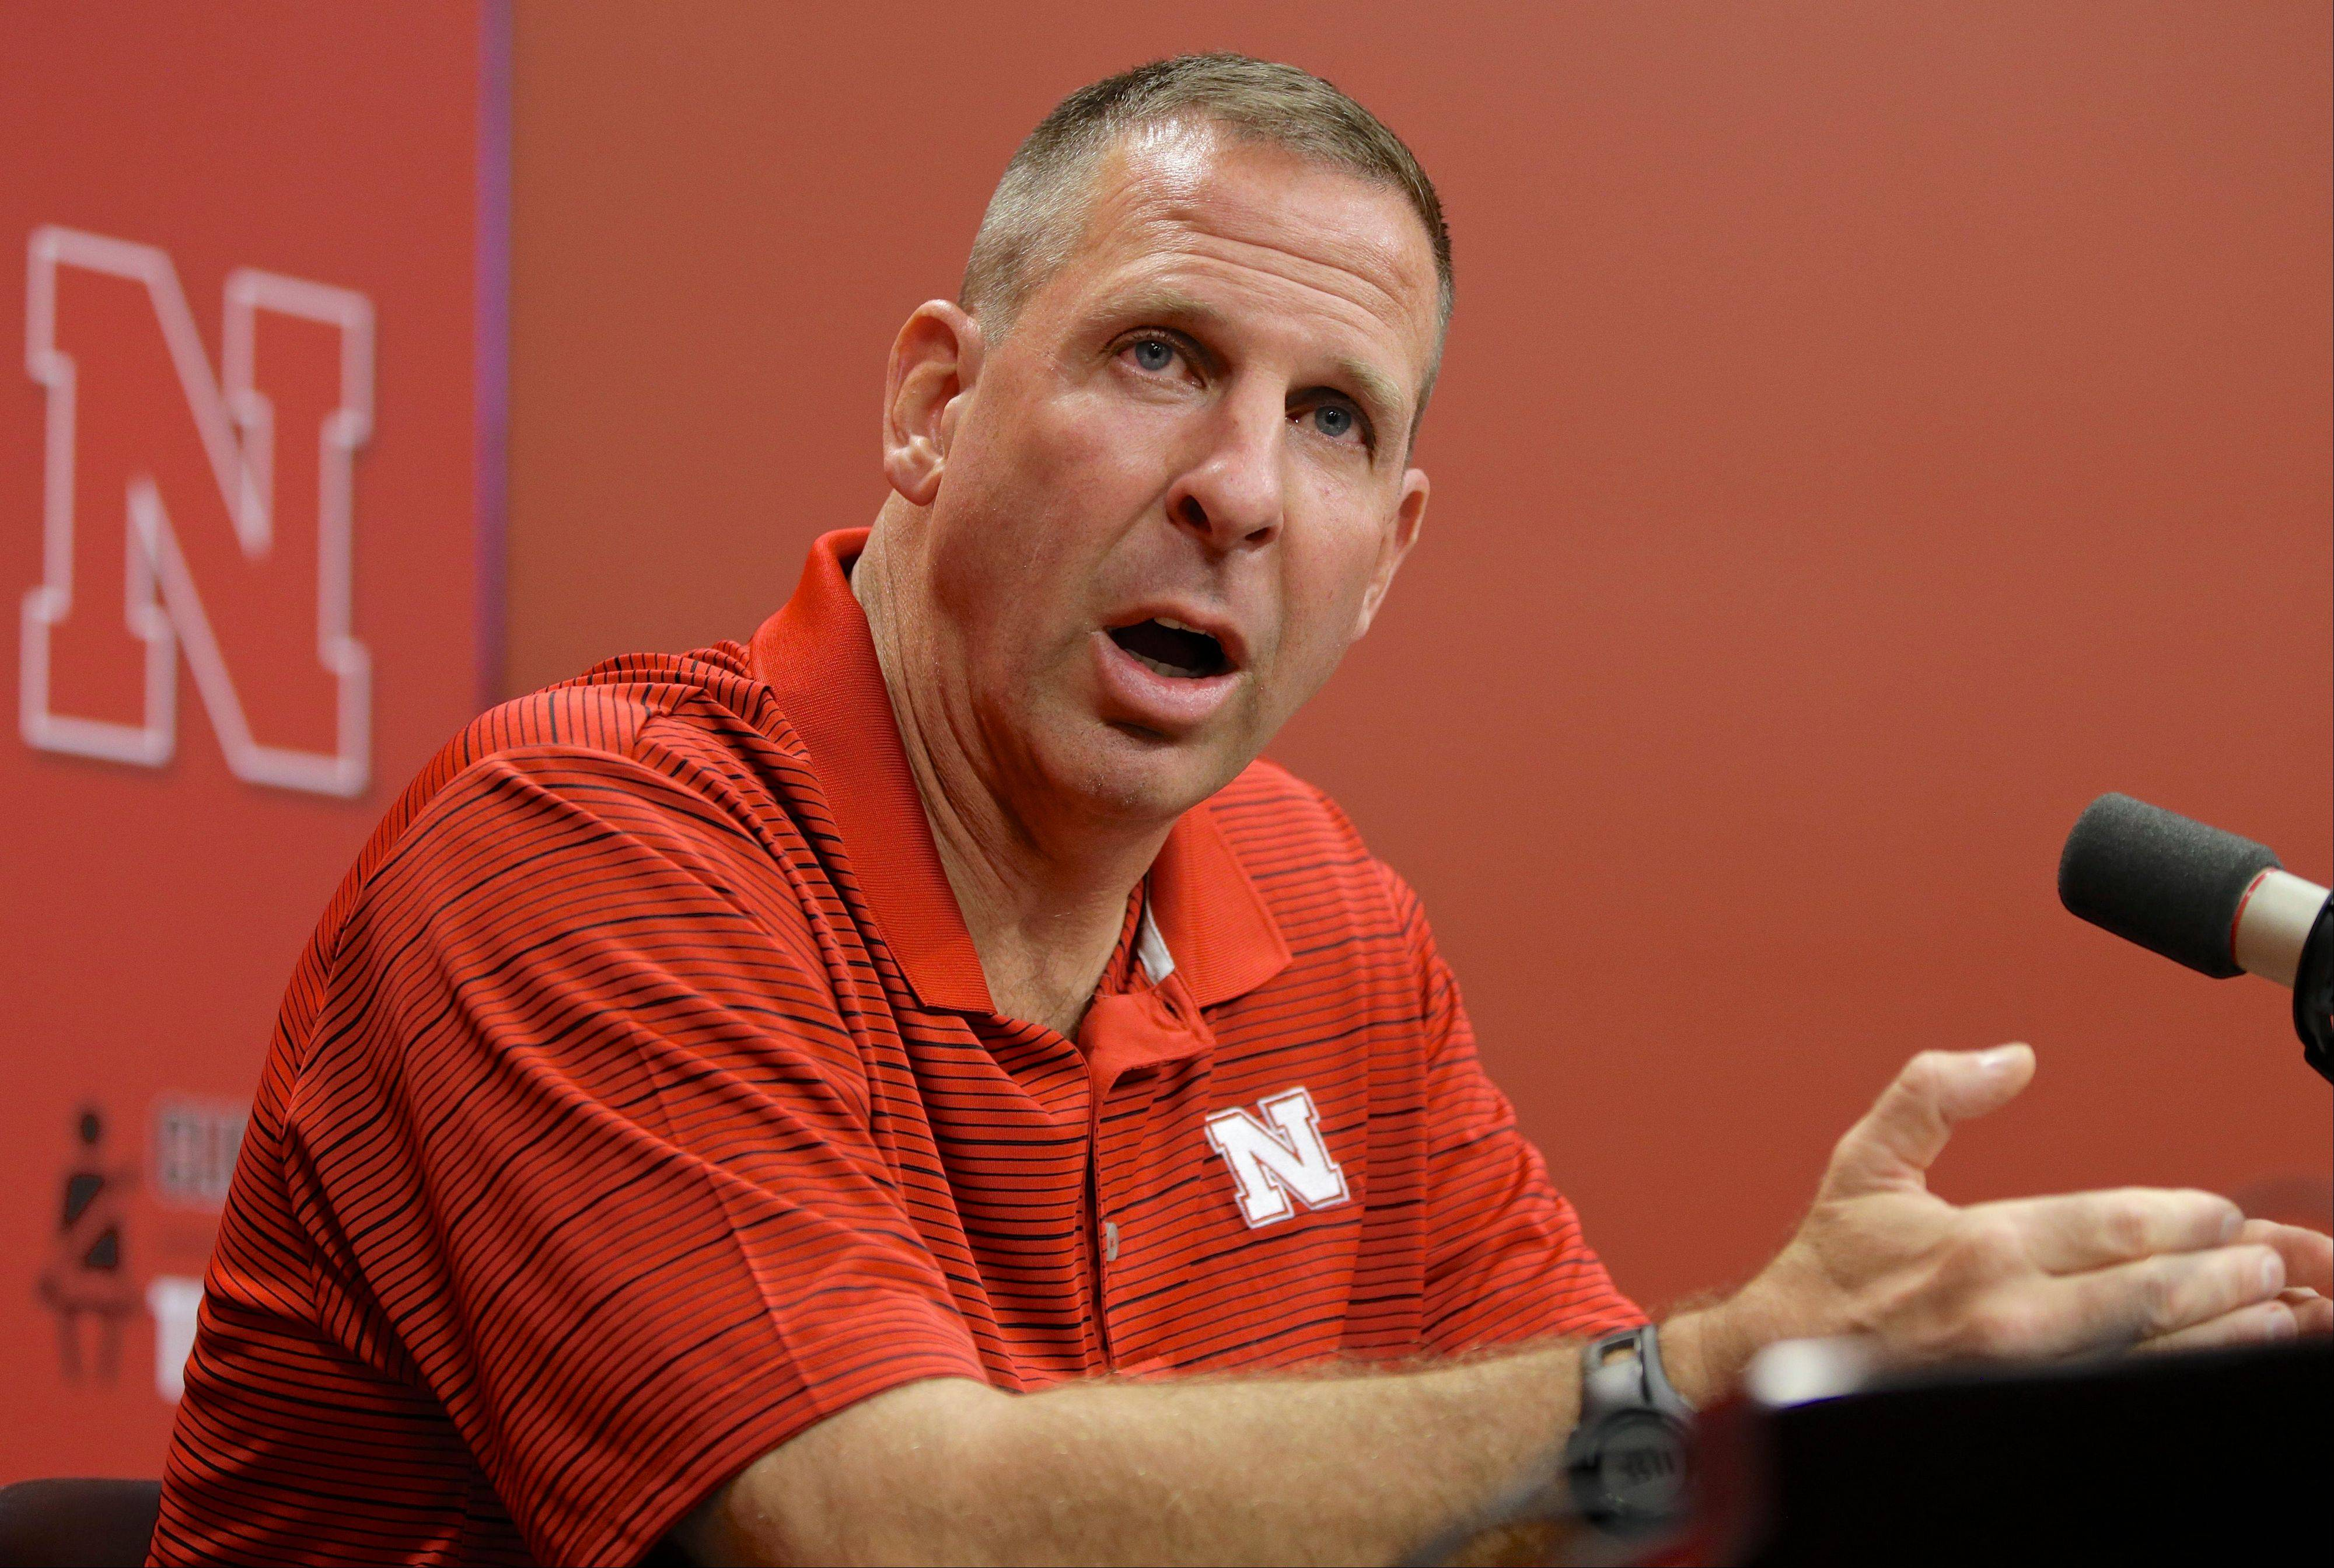 Nebraska head coach Bo Pelini knows his young defense will be tested right away by Wyoming's spread offense.